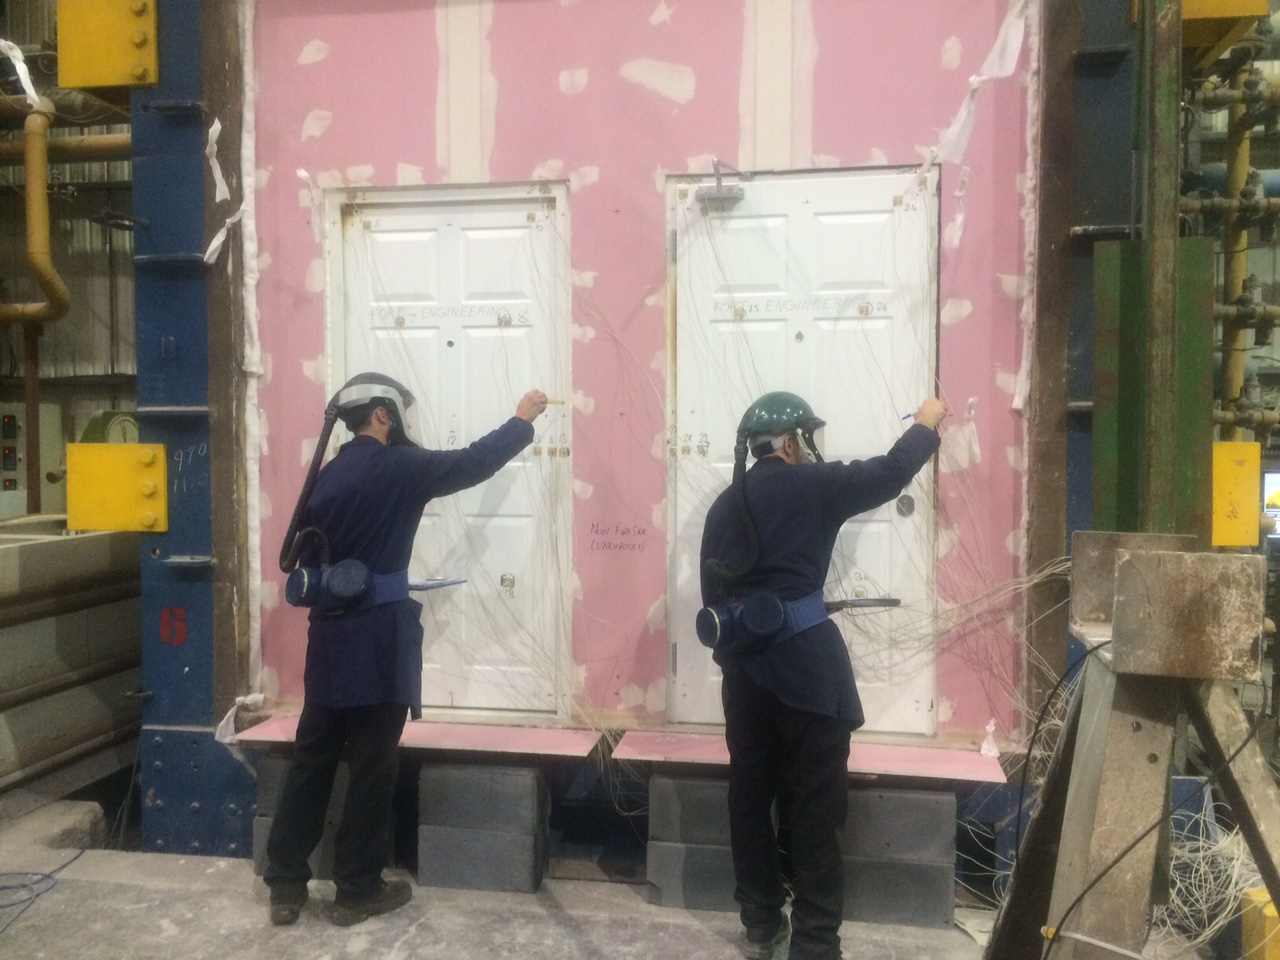 Security Doors Tested And Certified 006